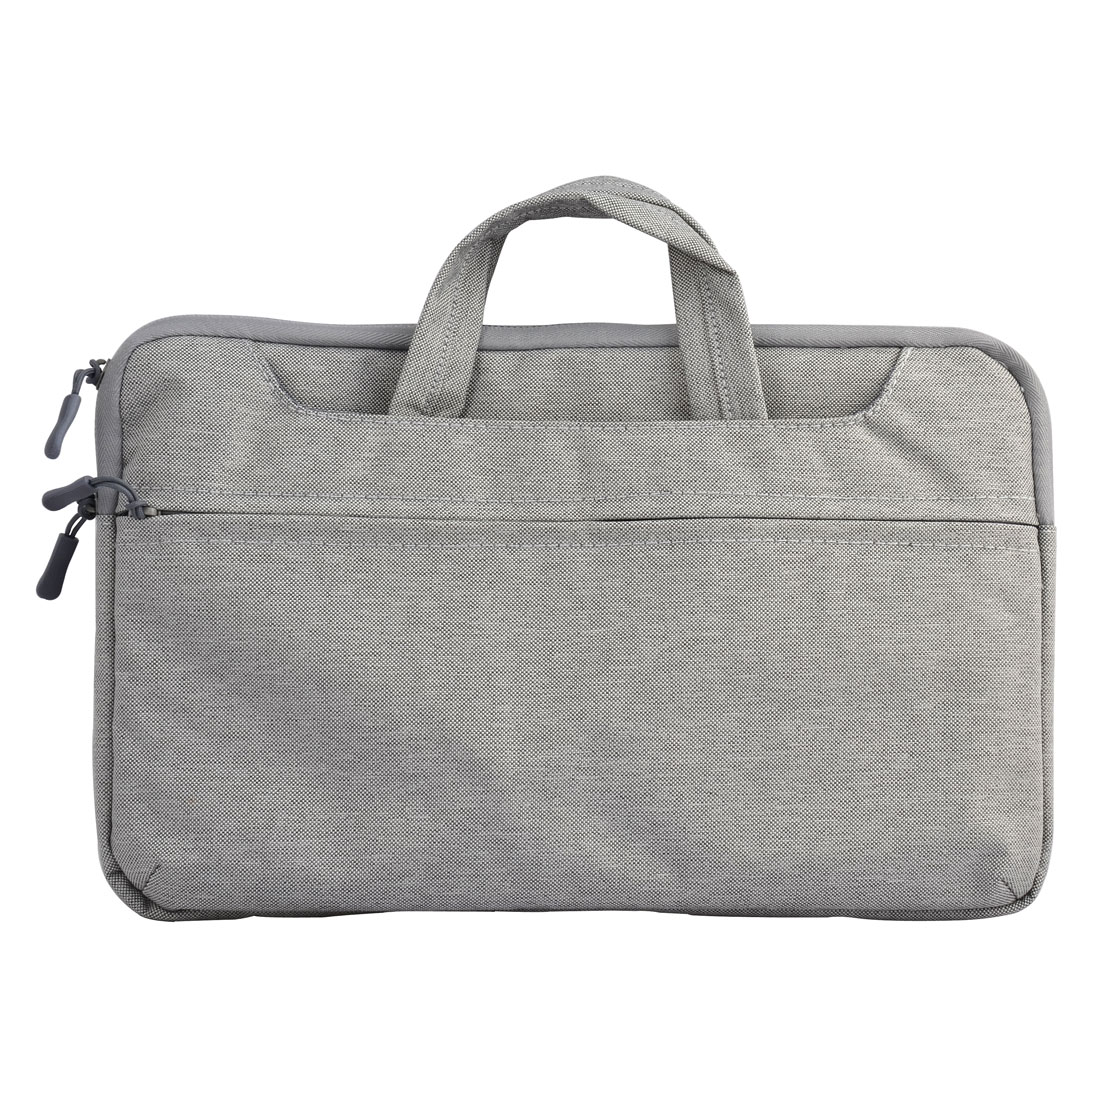 Protective Pouch Carrying Tablet Sleeve Shoulder Bag Case Gray for 13.3 Inch Pad